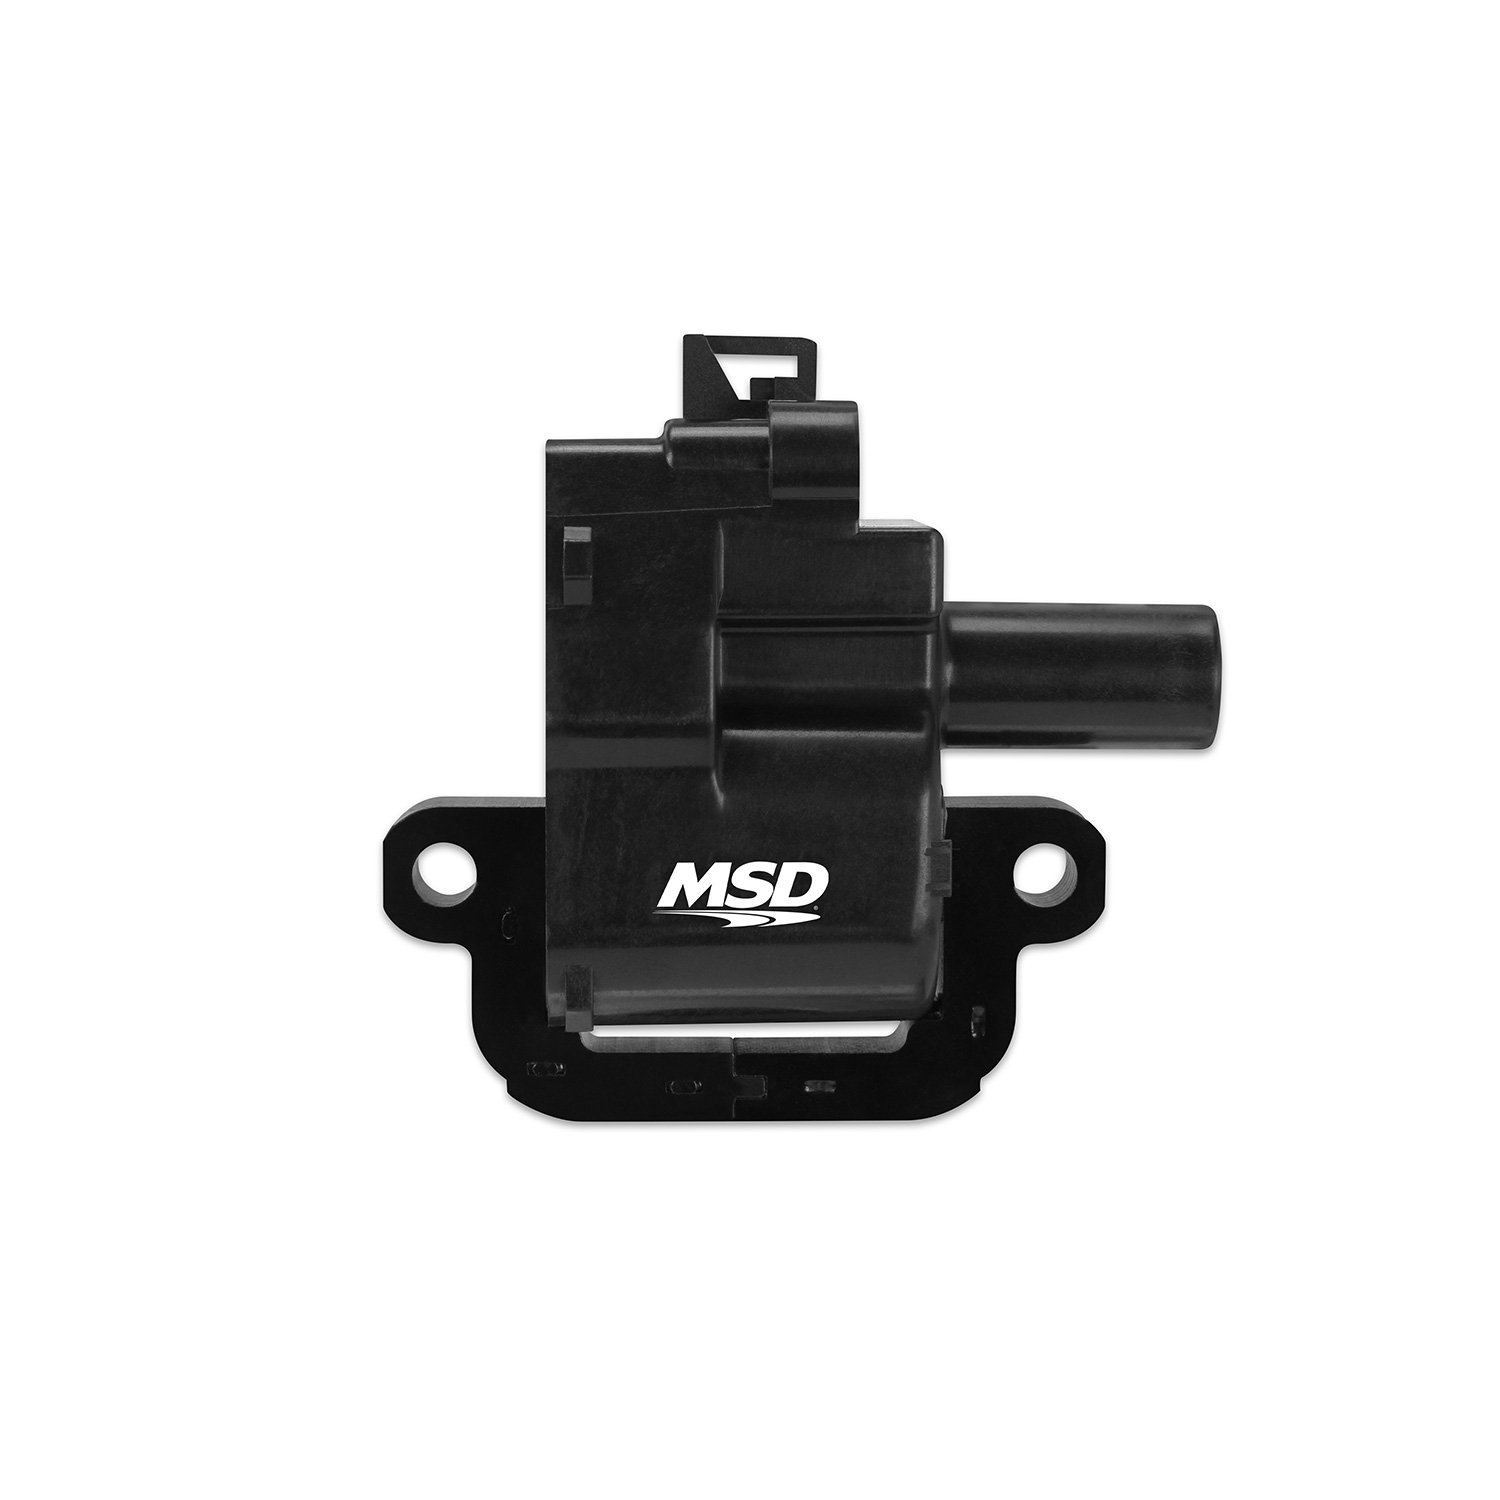 82623 - MSD Black GM LS1/LS6 Single Coil, '98-'06 Image